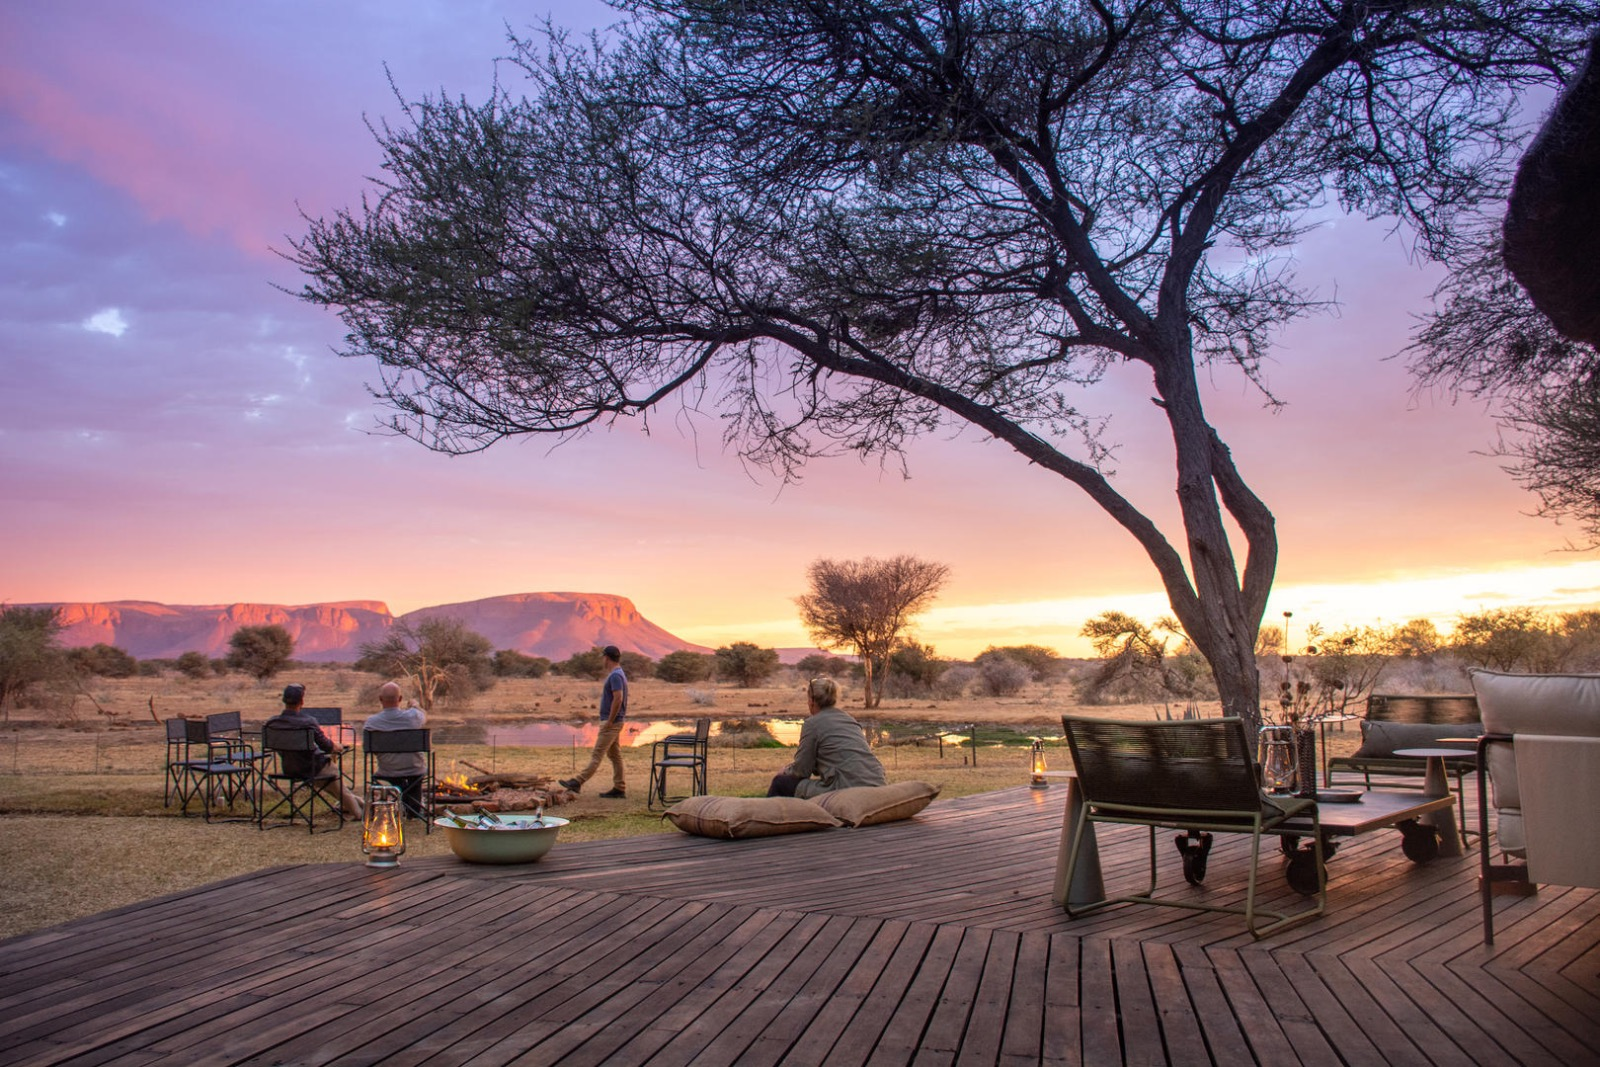 Sundowners and a beautiful view at Explorers Camp